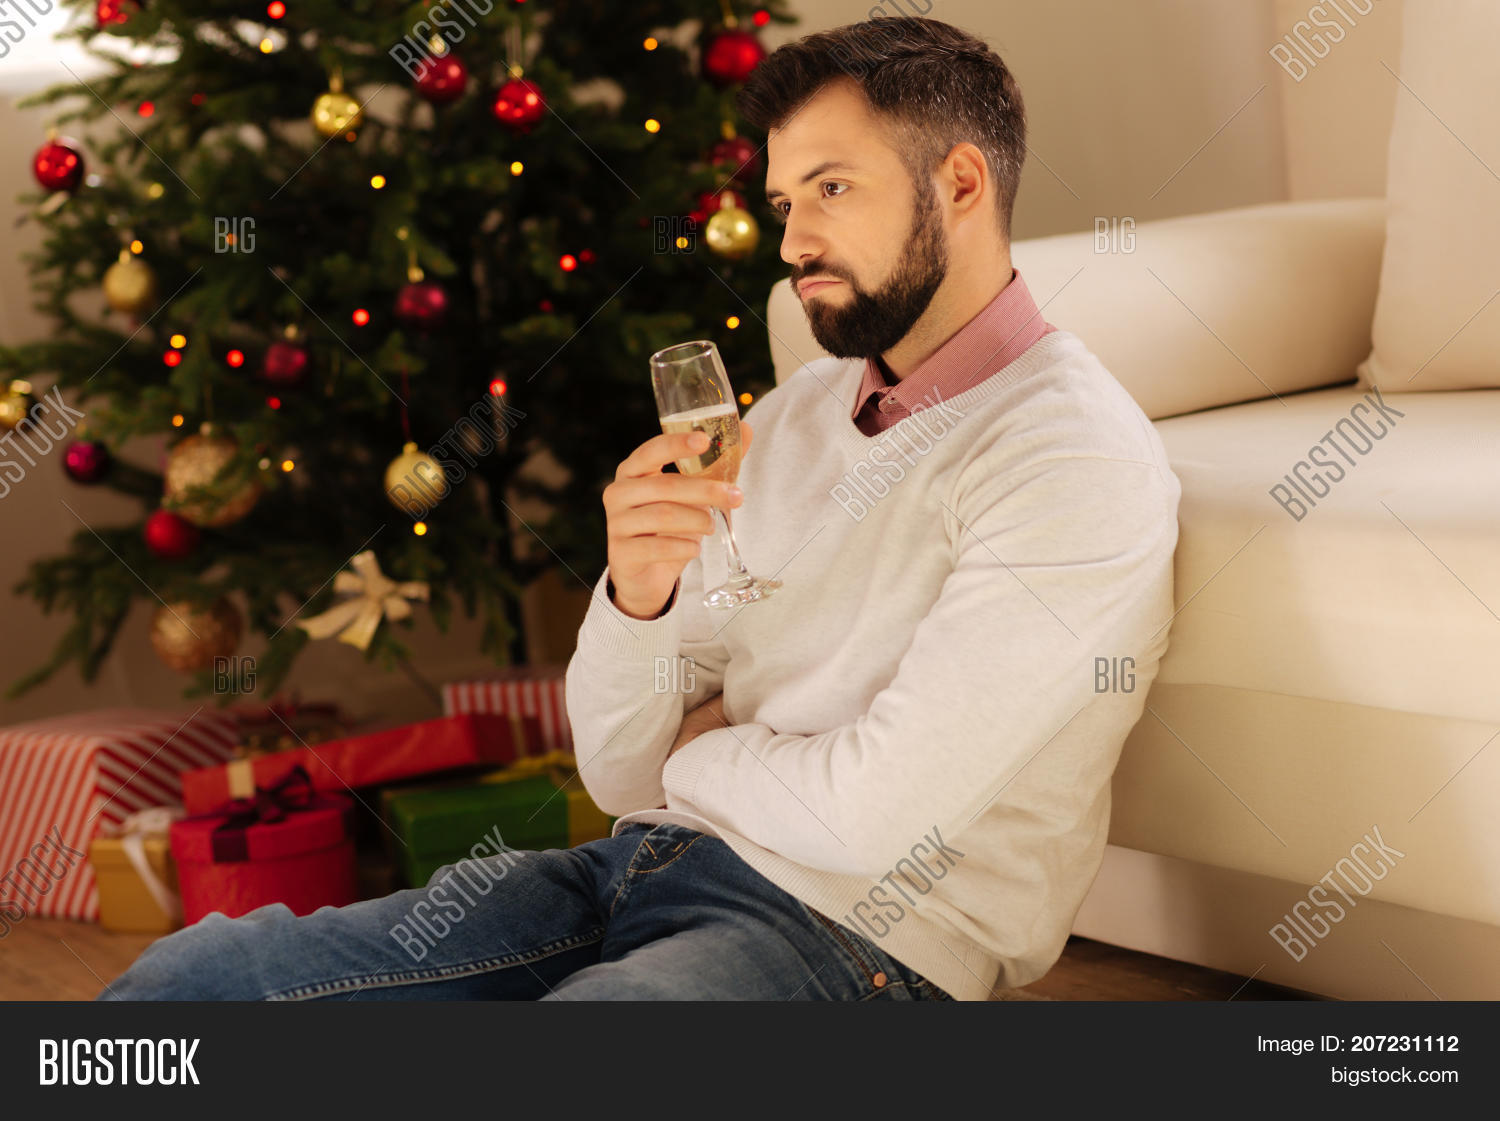 Lonely On Christmas.Lonely Christmas Sad Image Photo Free Trial Bigstock